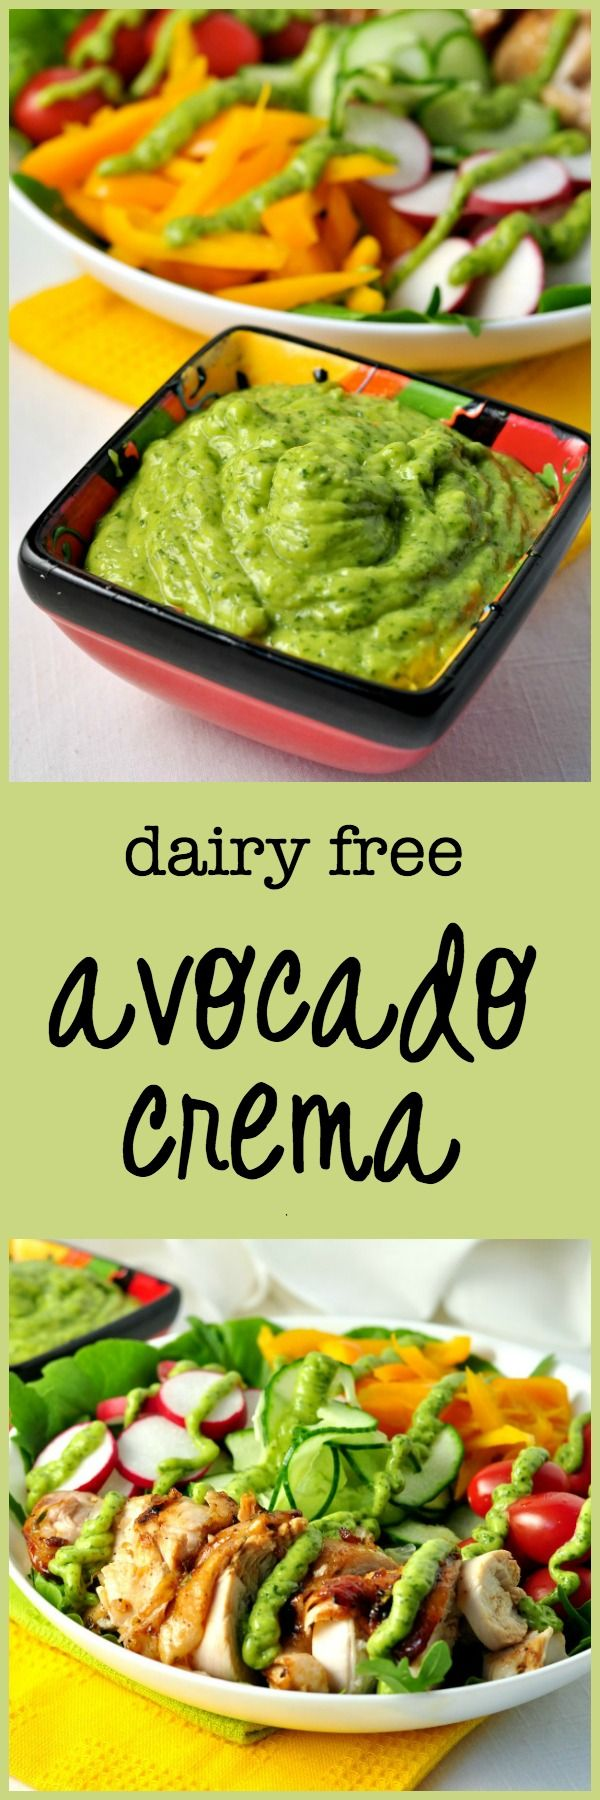 Use this as a dip, as a dressing, a topping for tacos or burritos. Creamy without the cream.